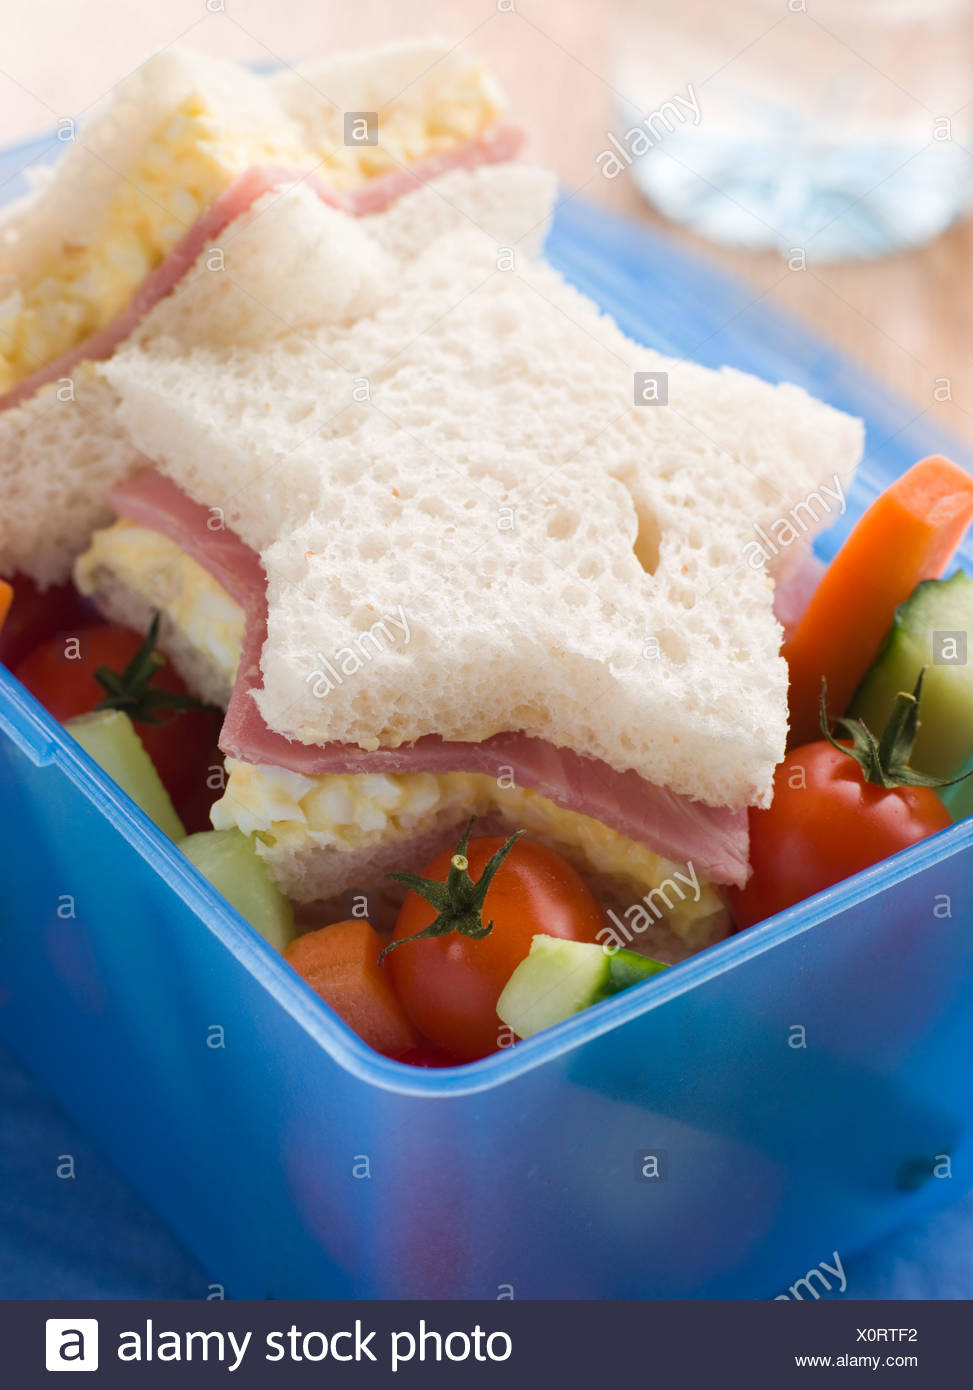 Star Shaped Egg Mayonnaise and Ham Sandwich with Crudities - Stock Image